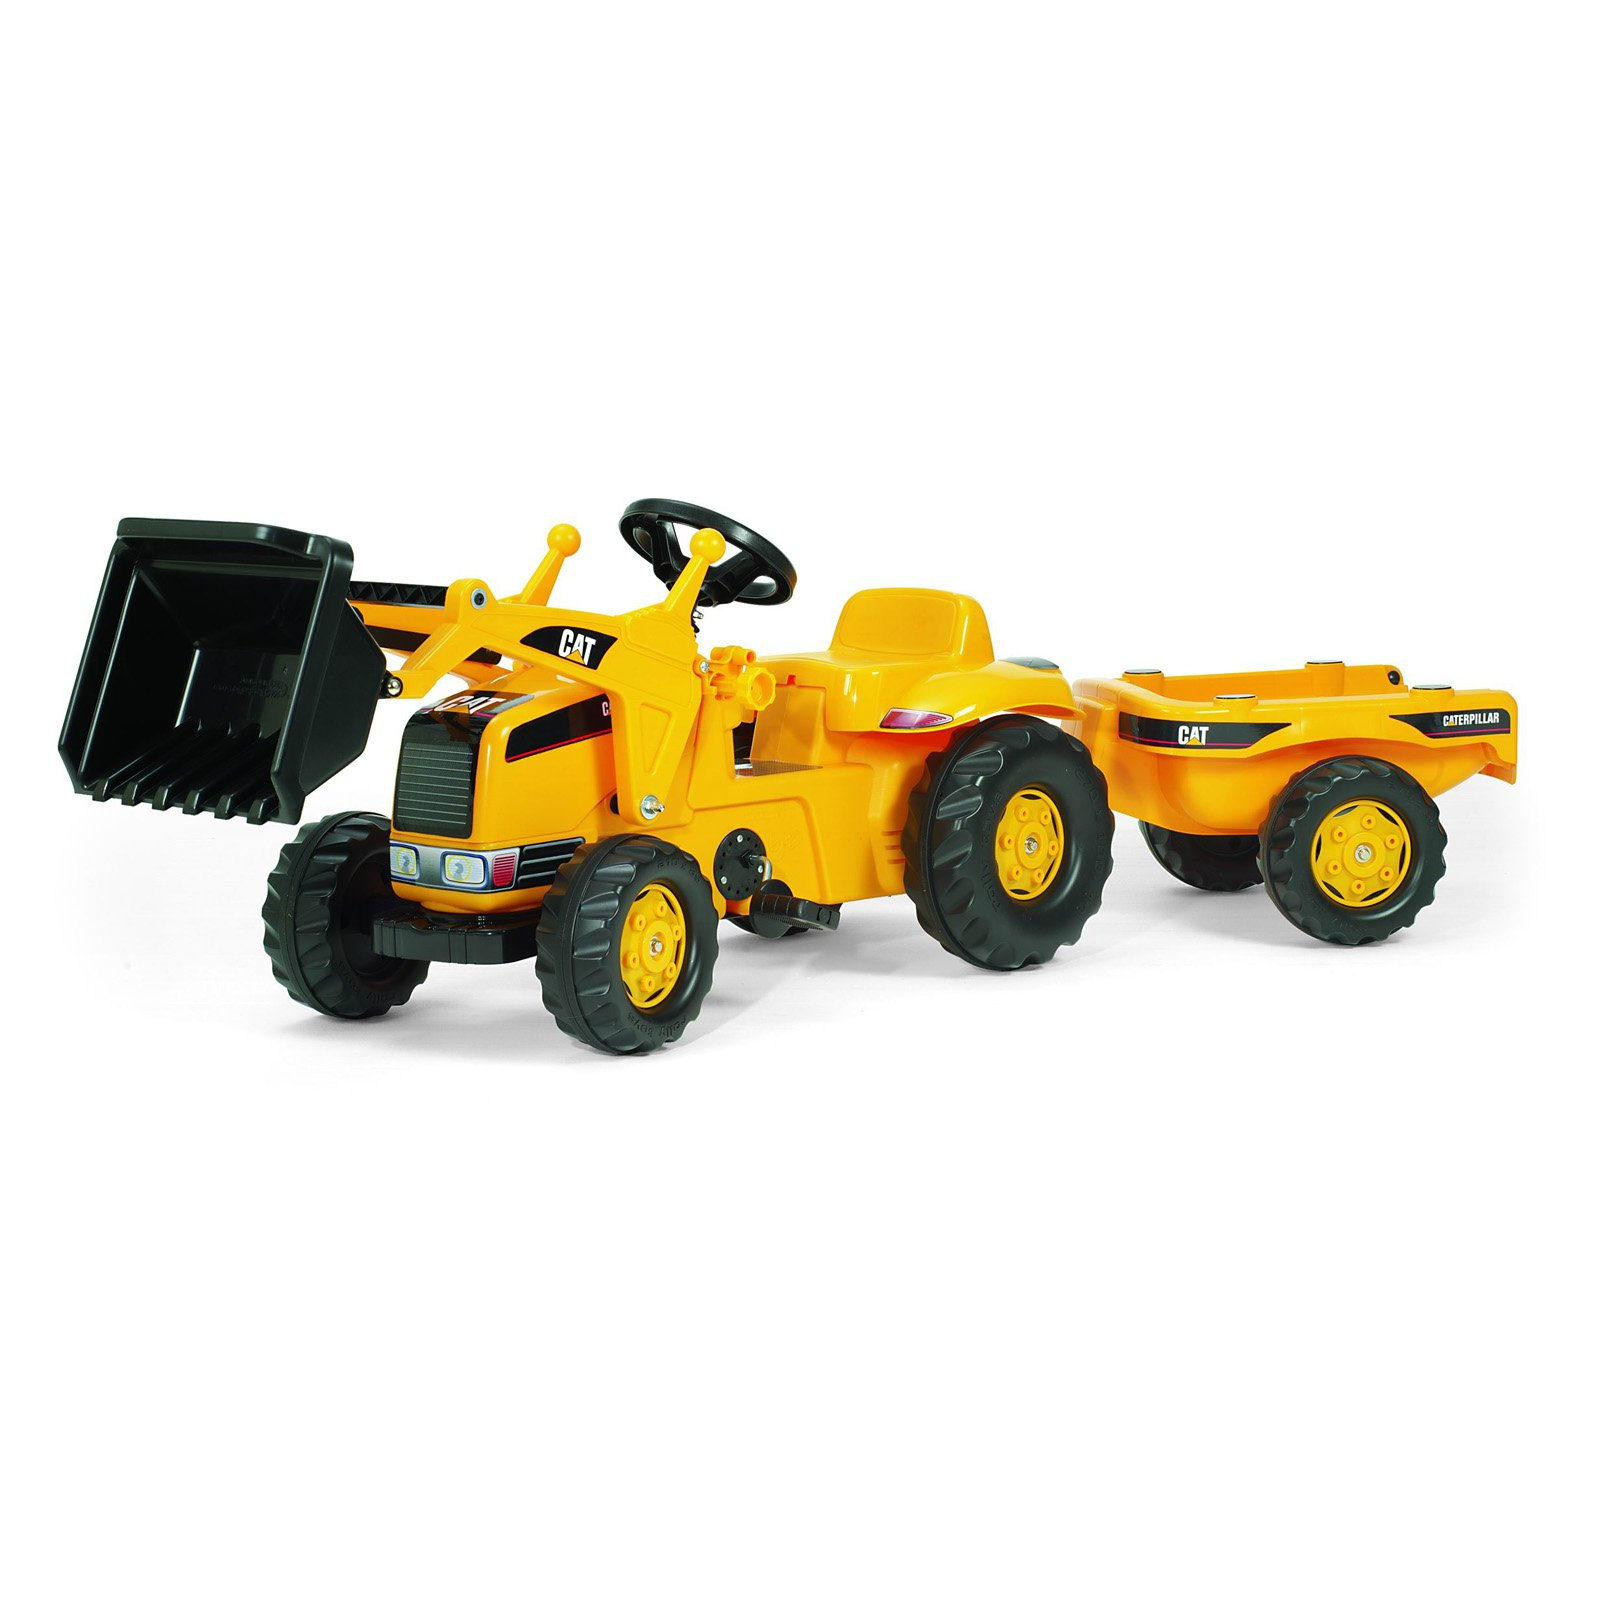 Rolly CAT Kid Tractor with Trailer